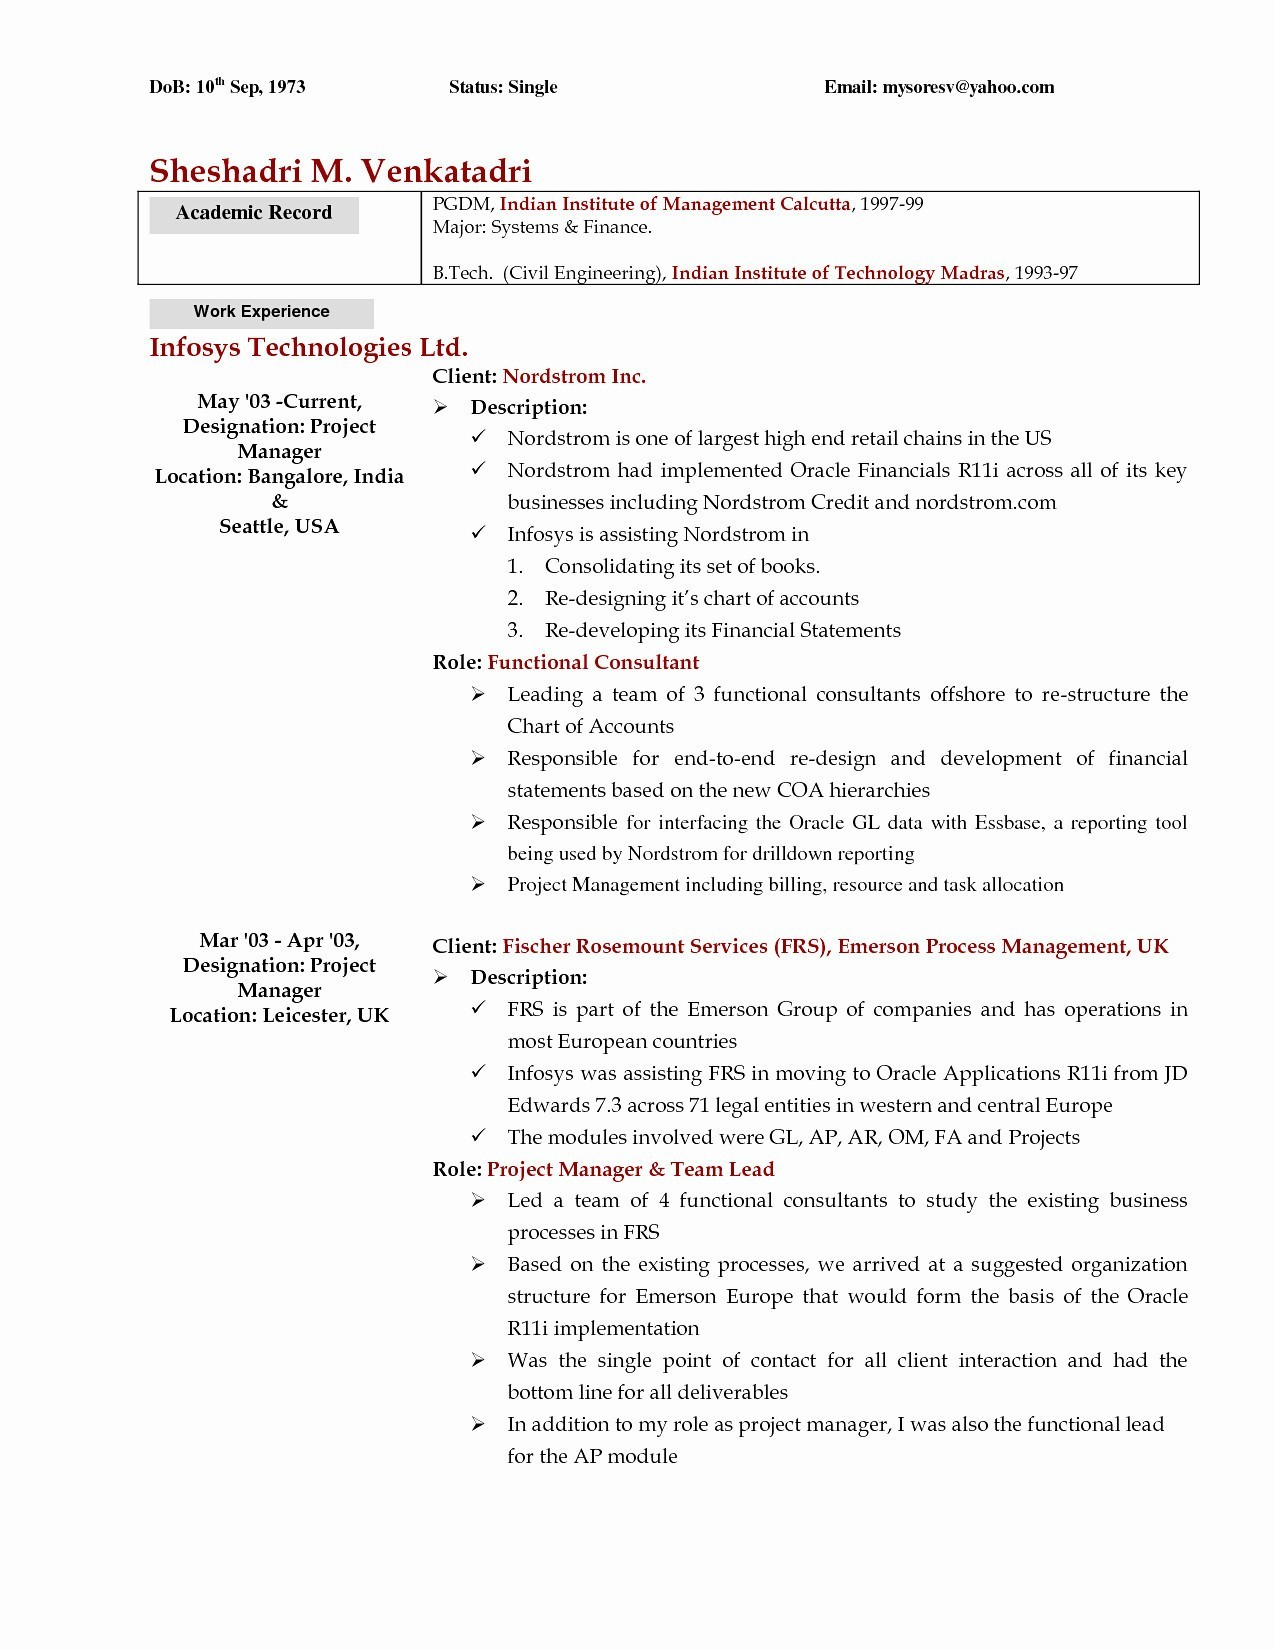 Program Manager Resume Template - Cto Resume Example Save Profile Resume Examples Unique Cto Resume 0d